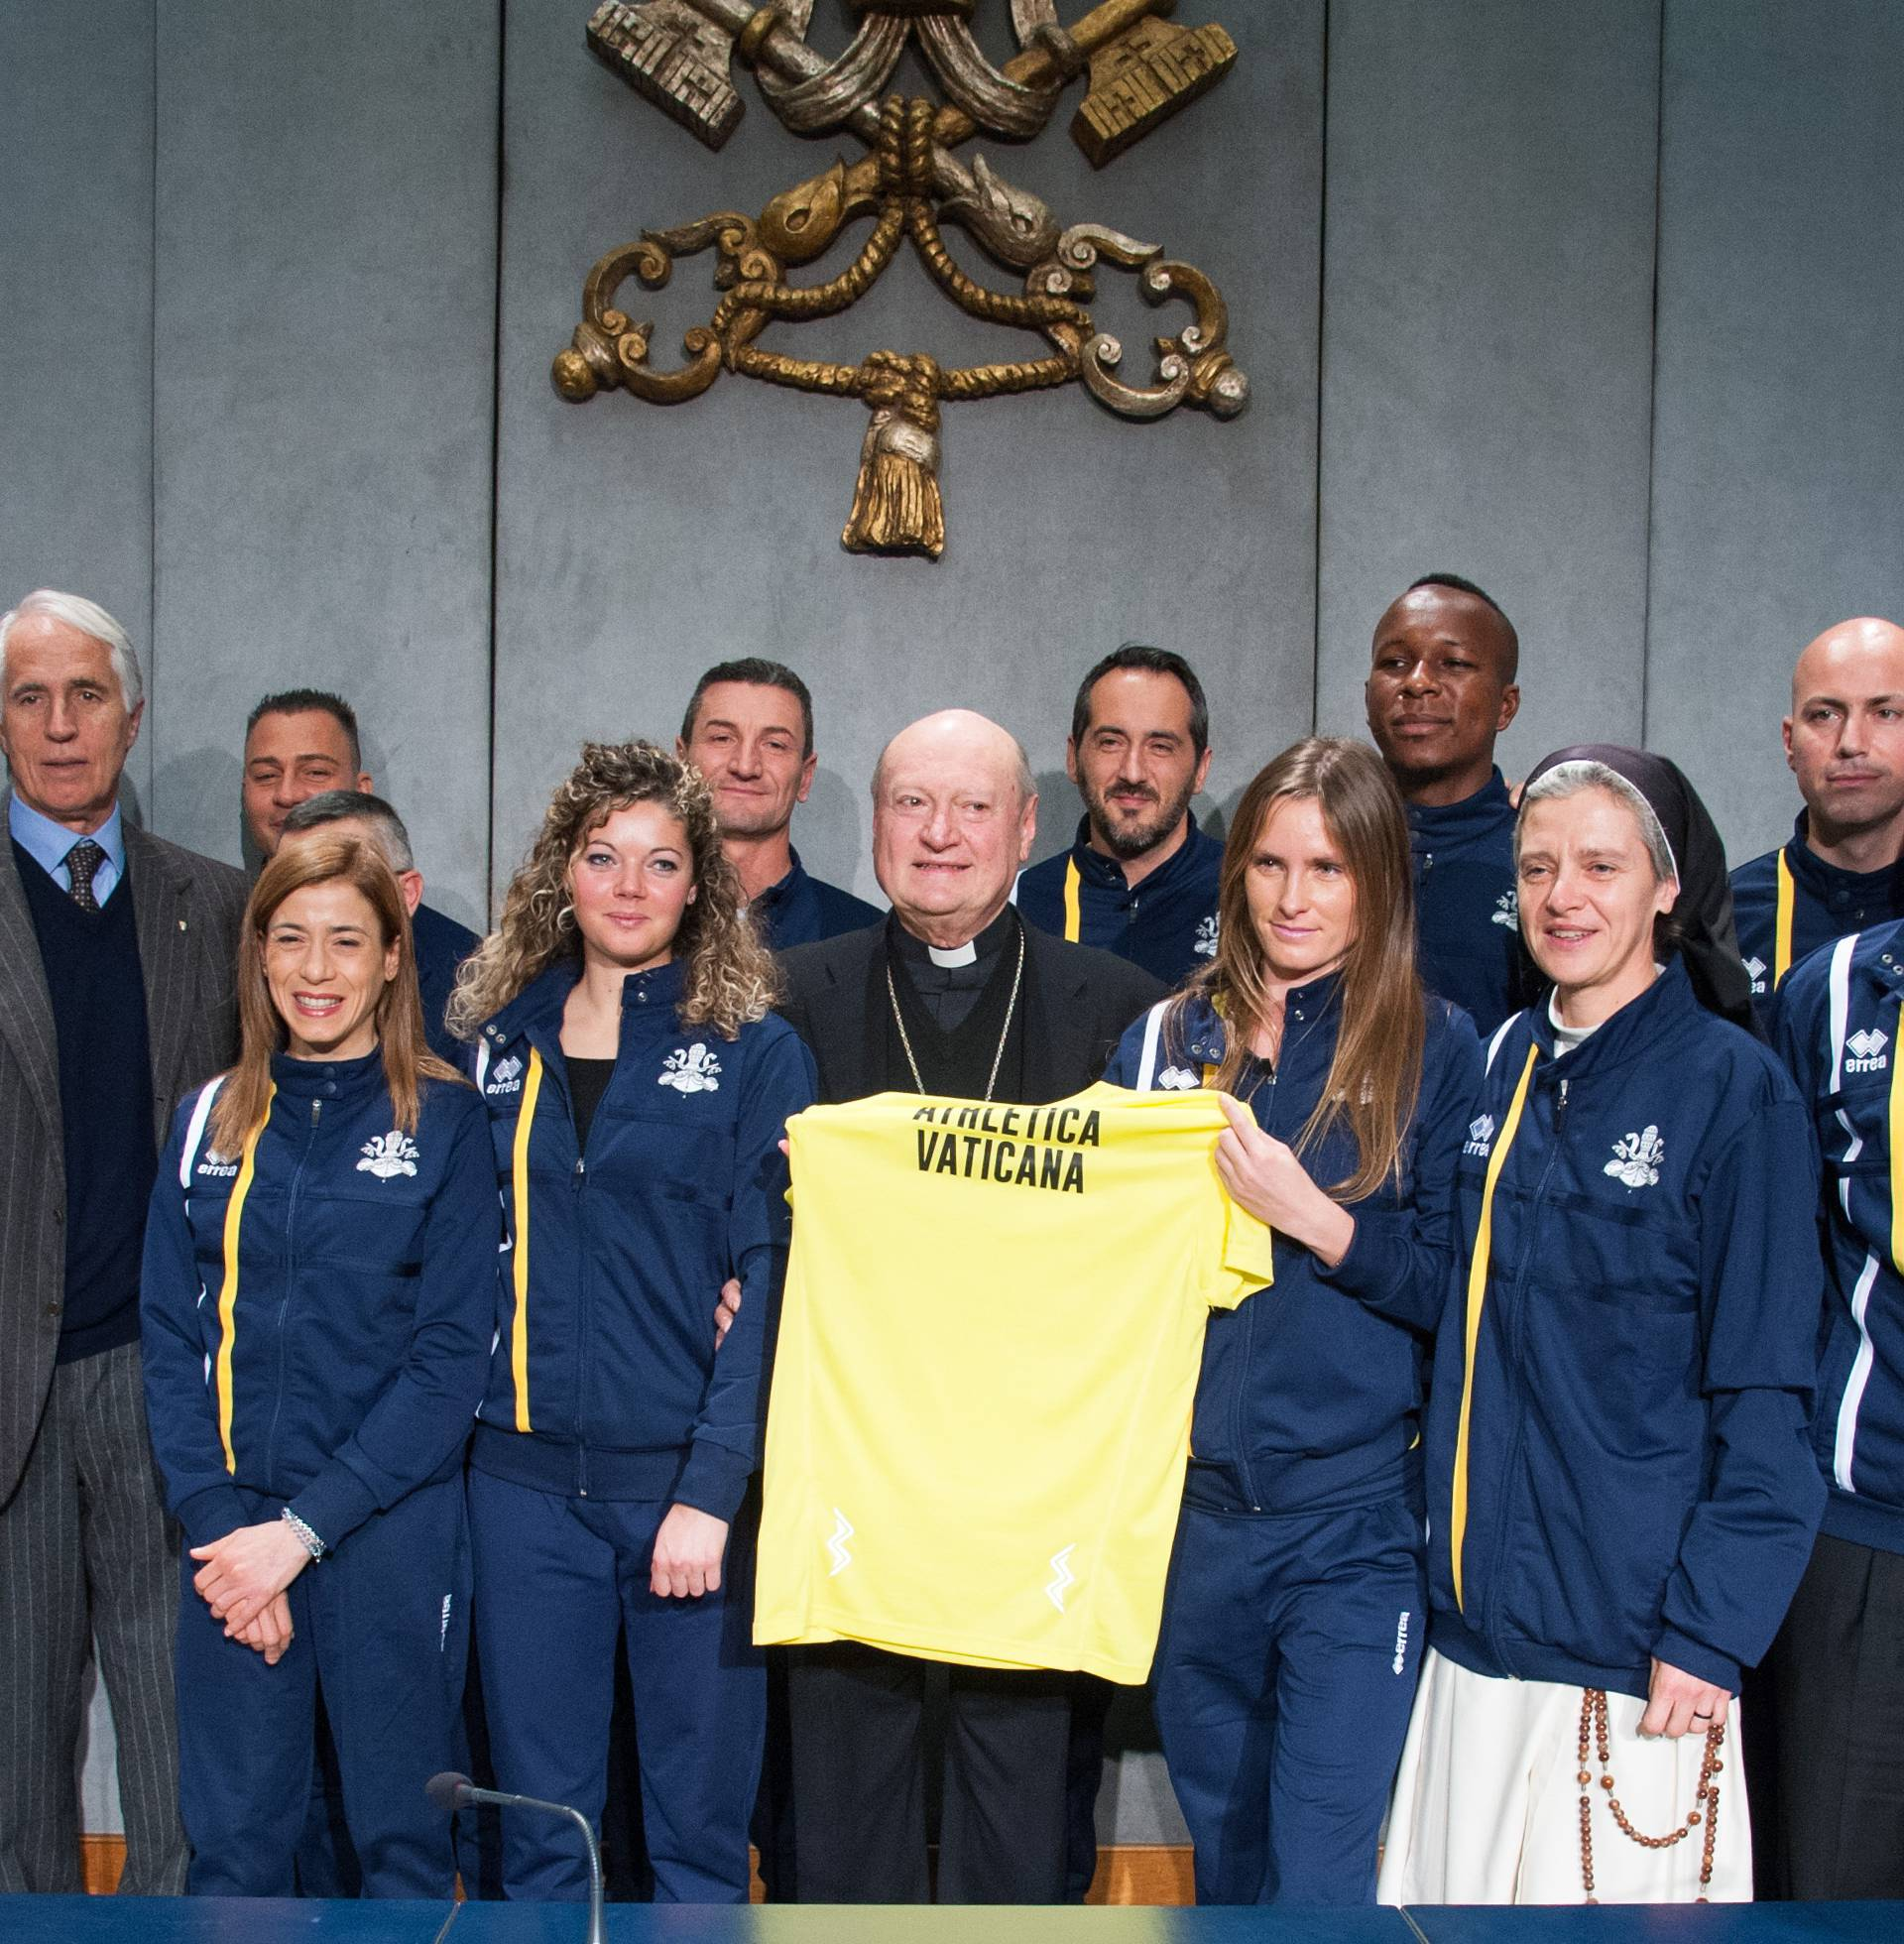 January 10, 2019 : Press Conference to present Vatican Athletics and the Bilateral Agreement with the Italian National Olympic Committee (CONI).